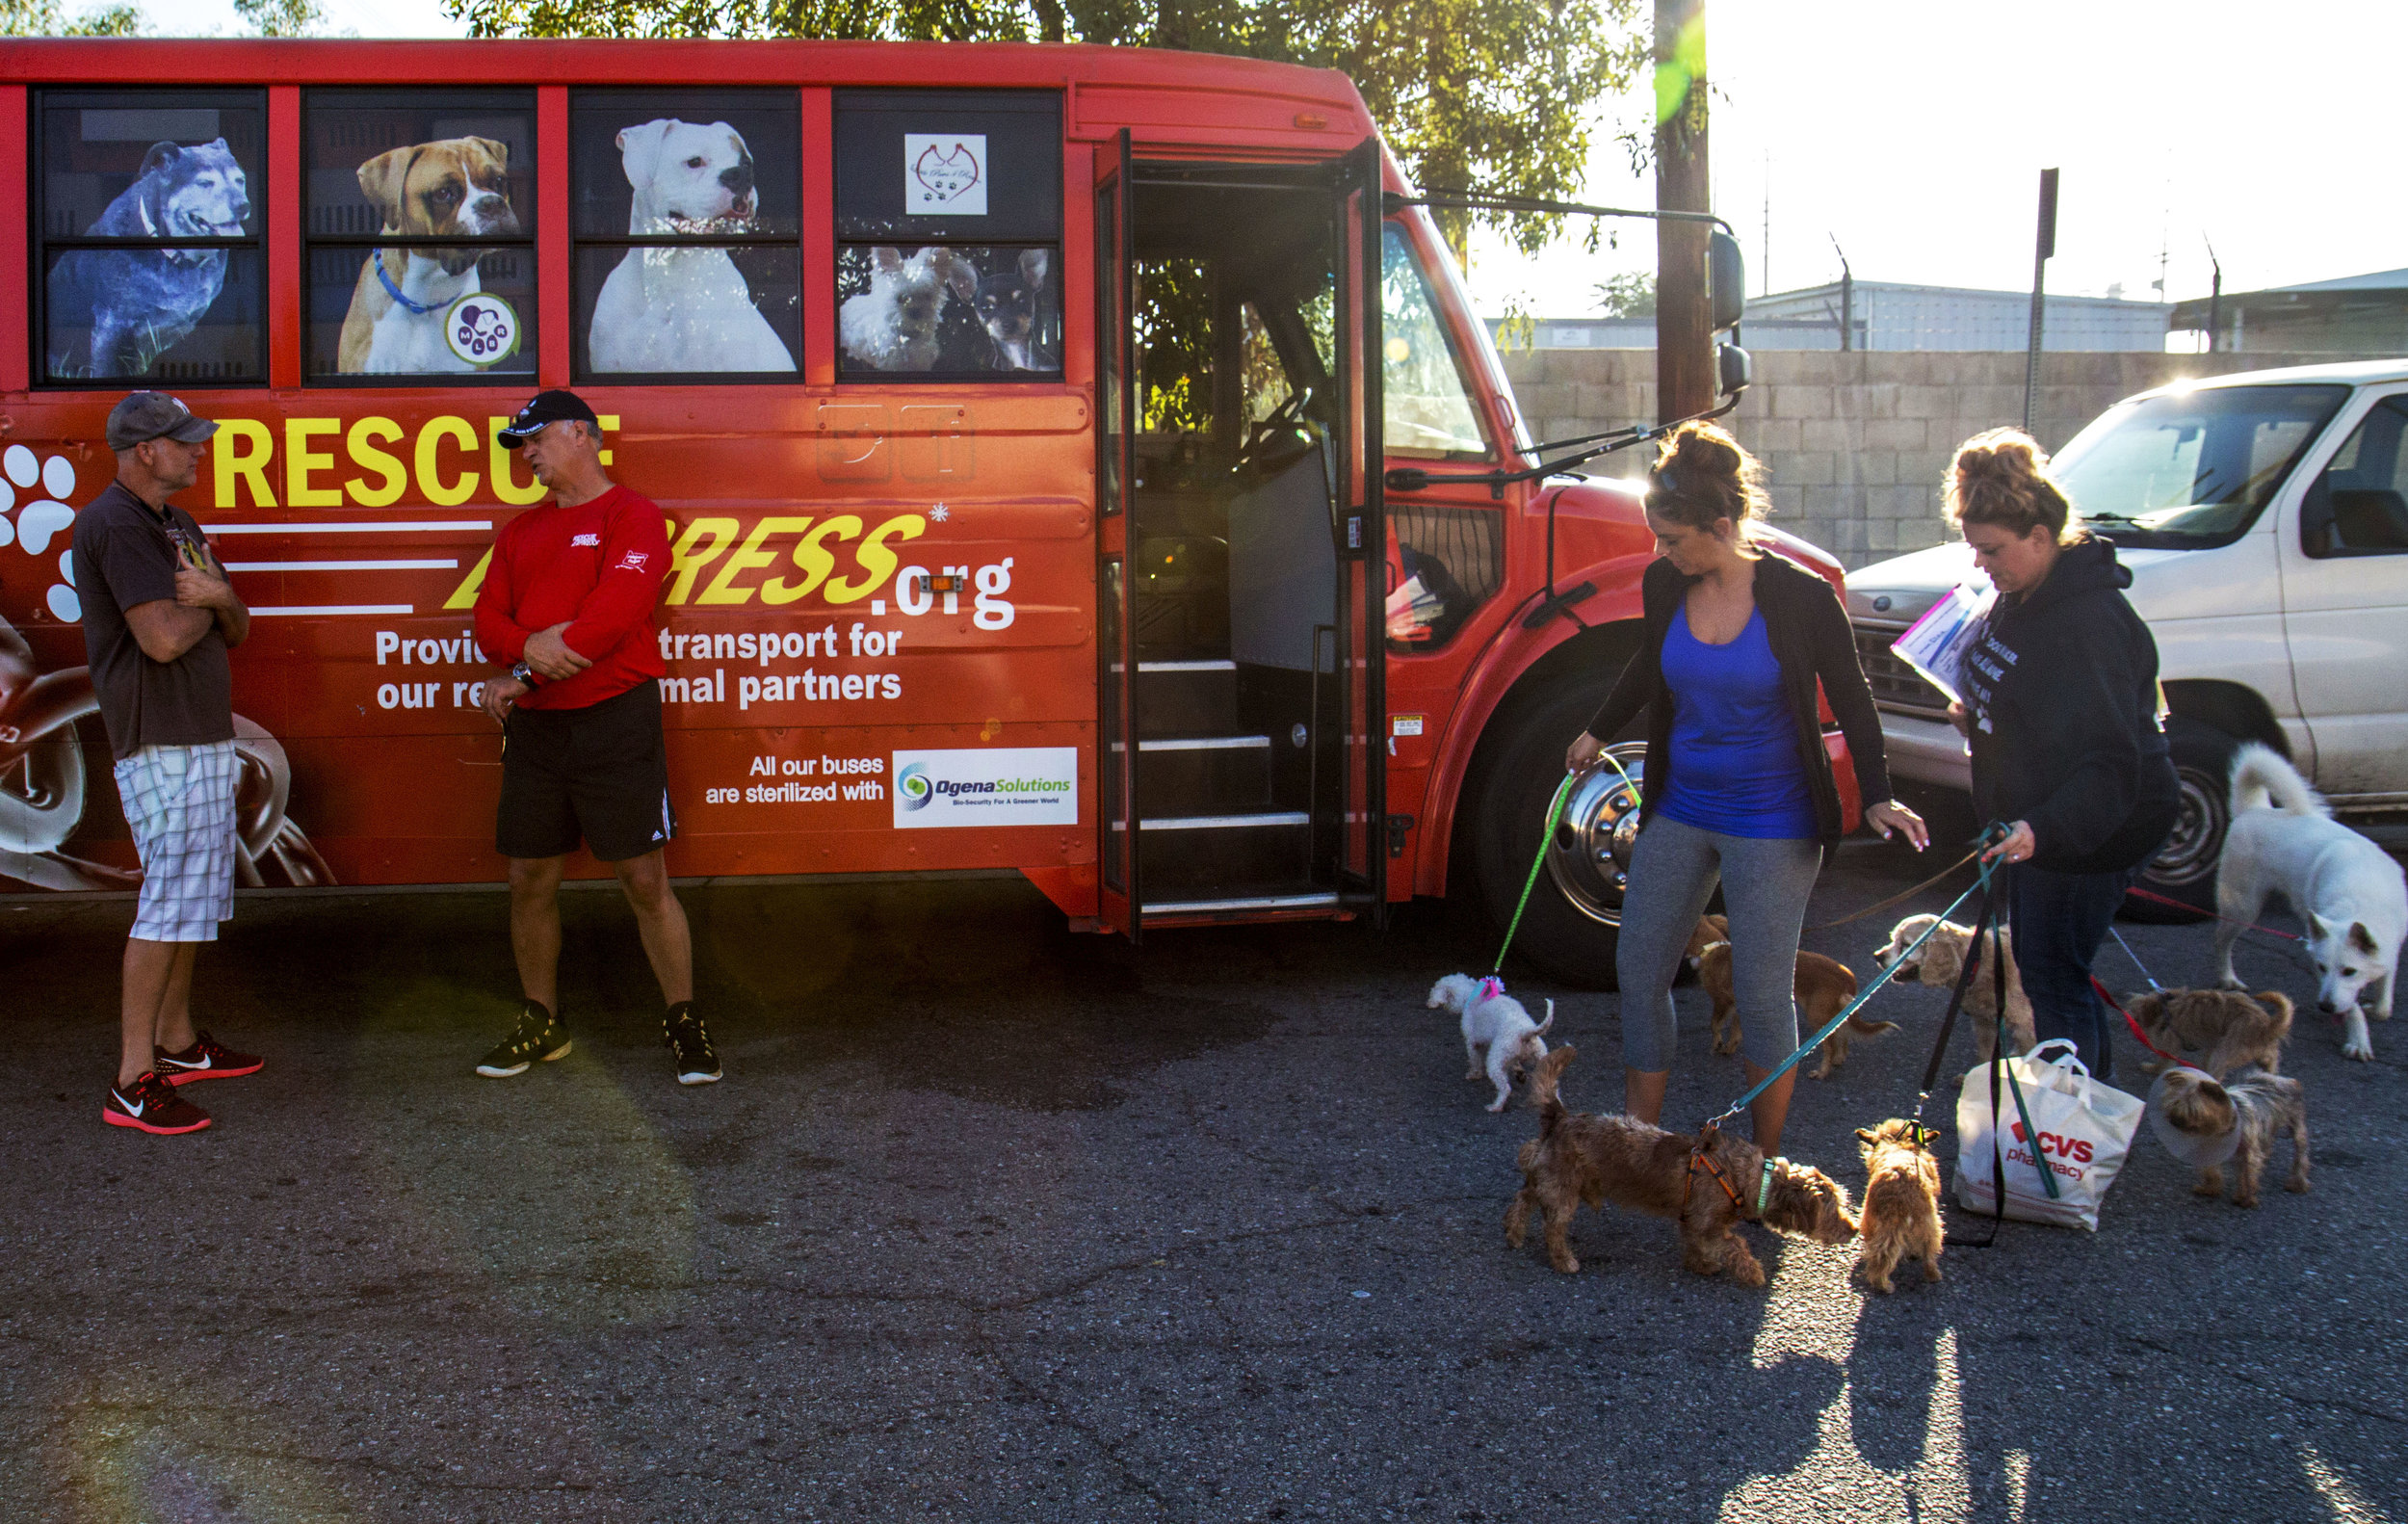 People wait outside the Rescue Express bus to load their animals at the first stop at Almost Home Boarding Place in San Fernando, Ca. The staff of the bus filled 24 carriers at the first stop.